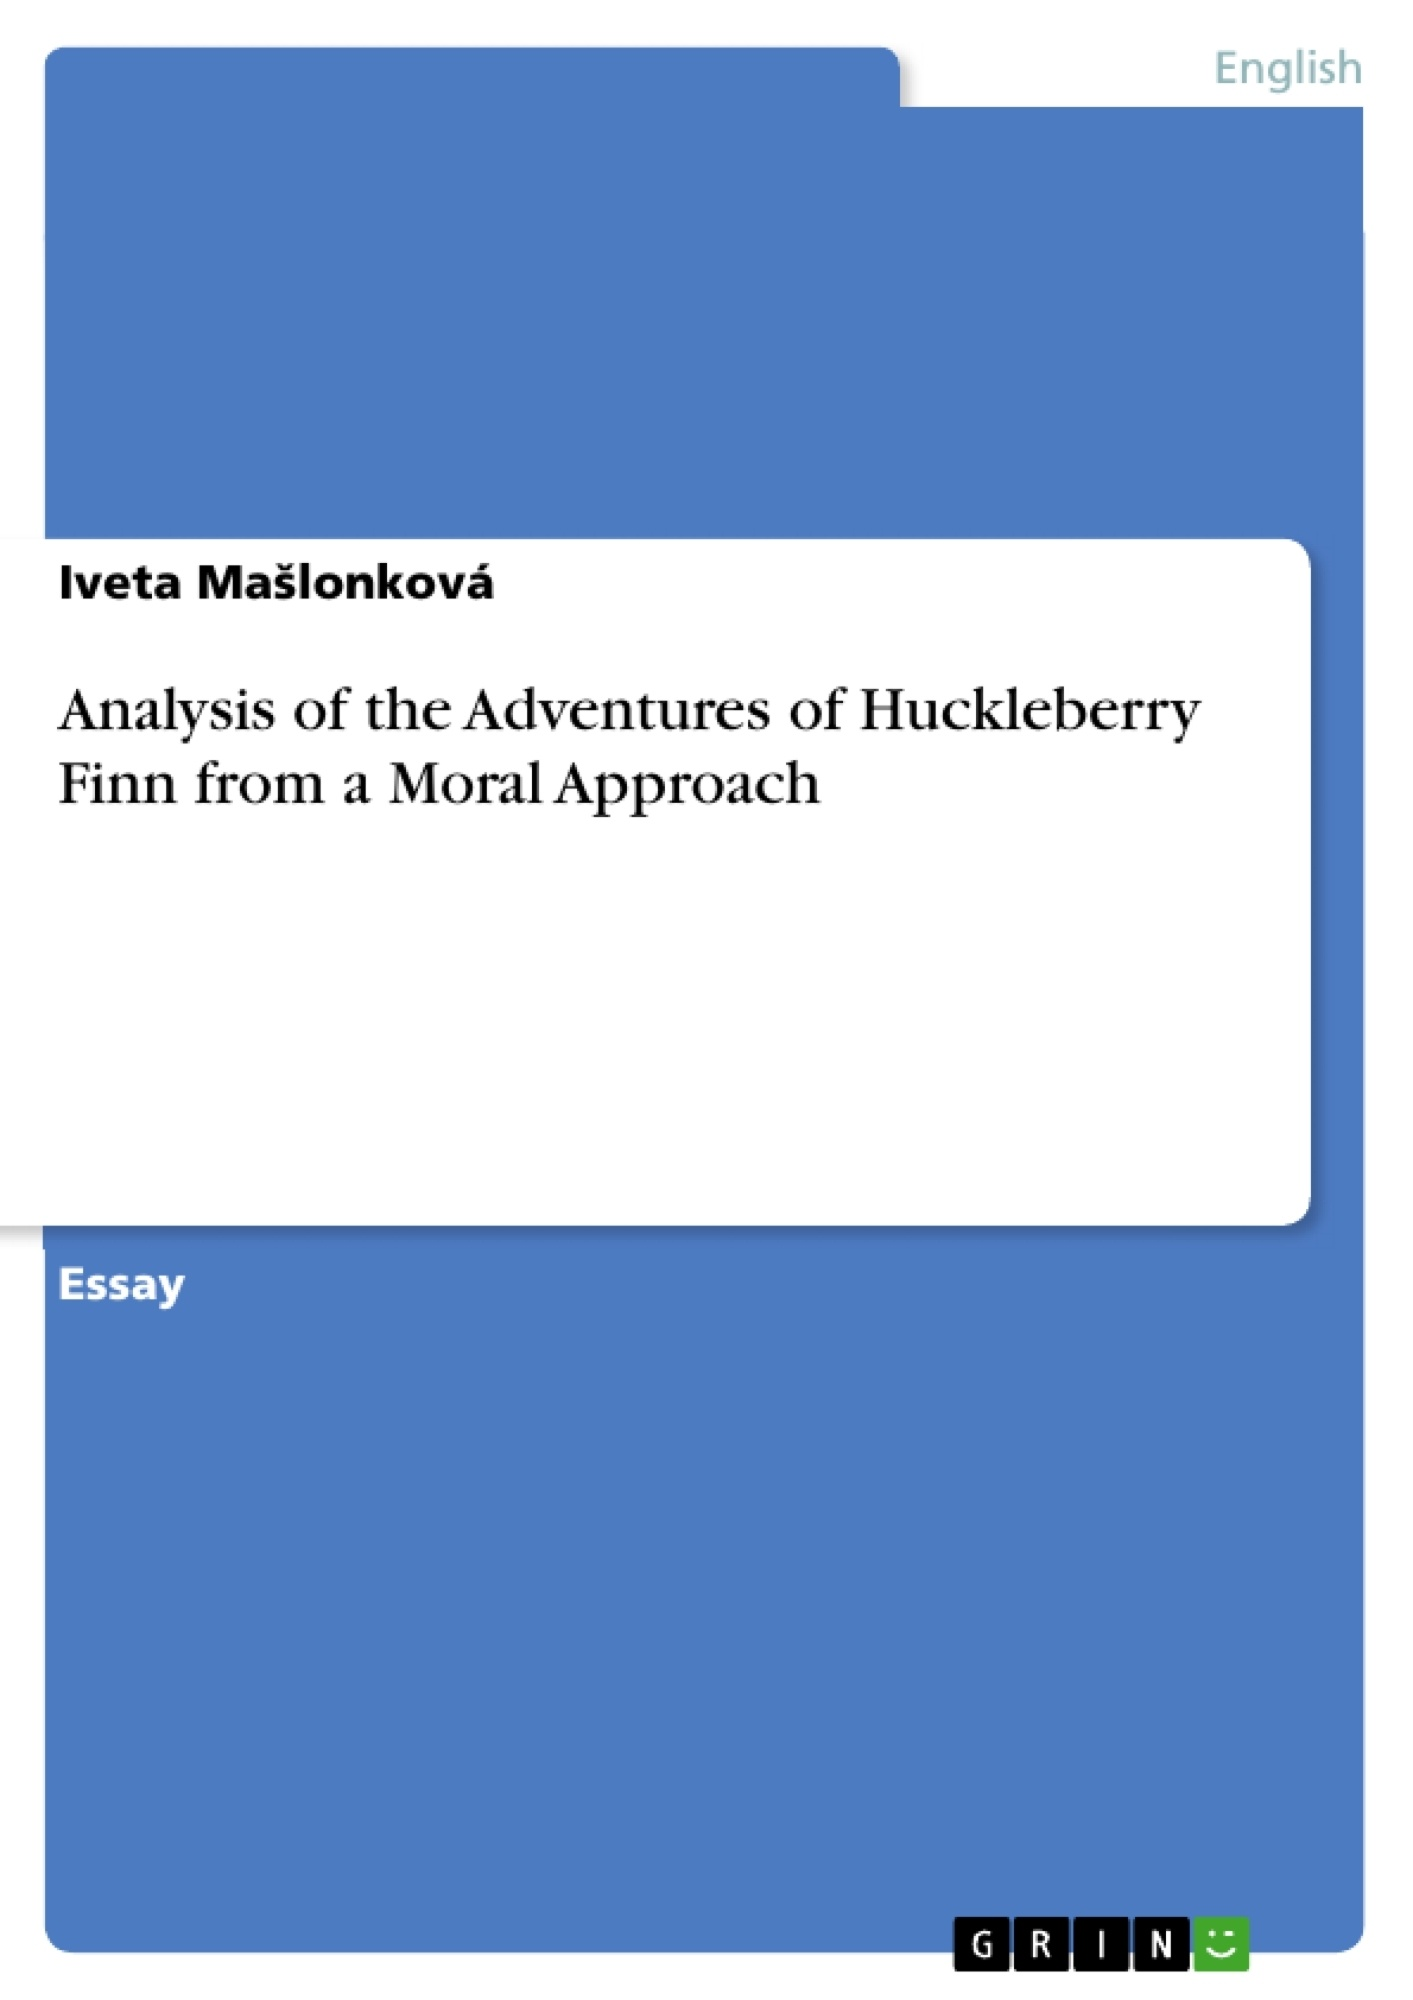 Analysis Of The Adventures Of Huckleberry Finn From A Moral Approach  Upload Your Own Papers Earn Money And Win An Iphone X Essay On My School In English also Custom Writing Services L L C  Do My Hw